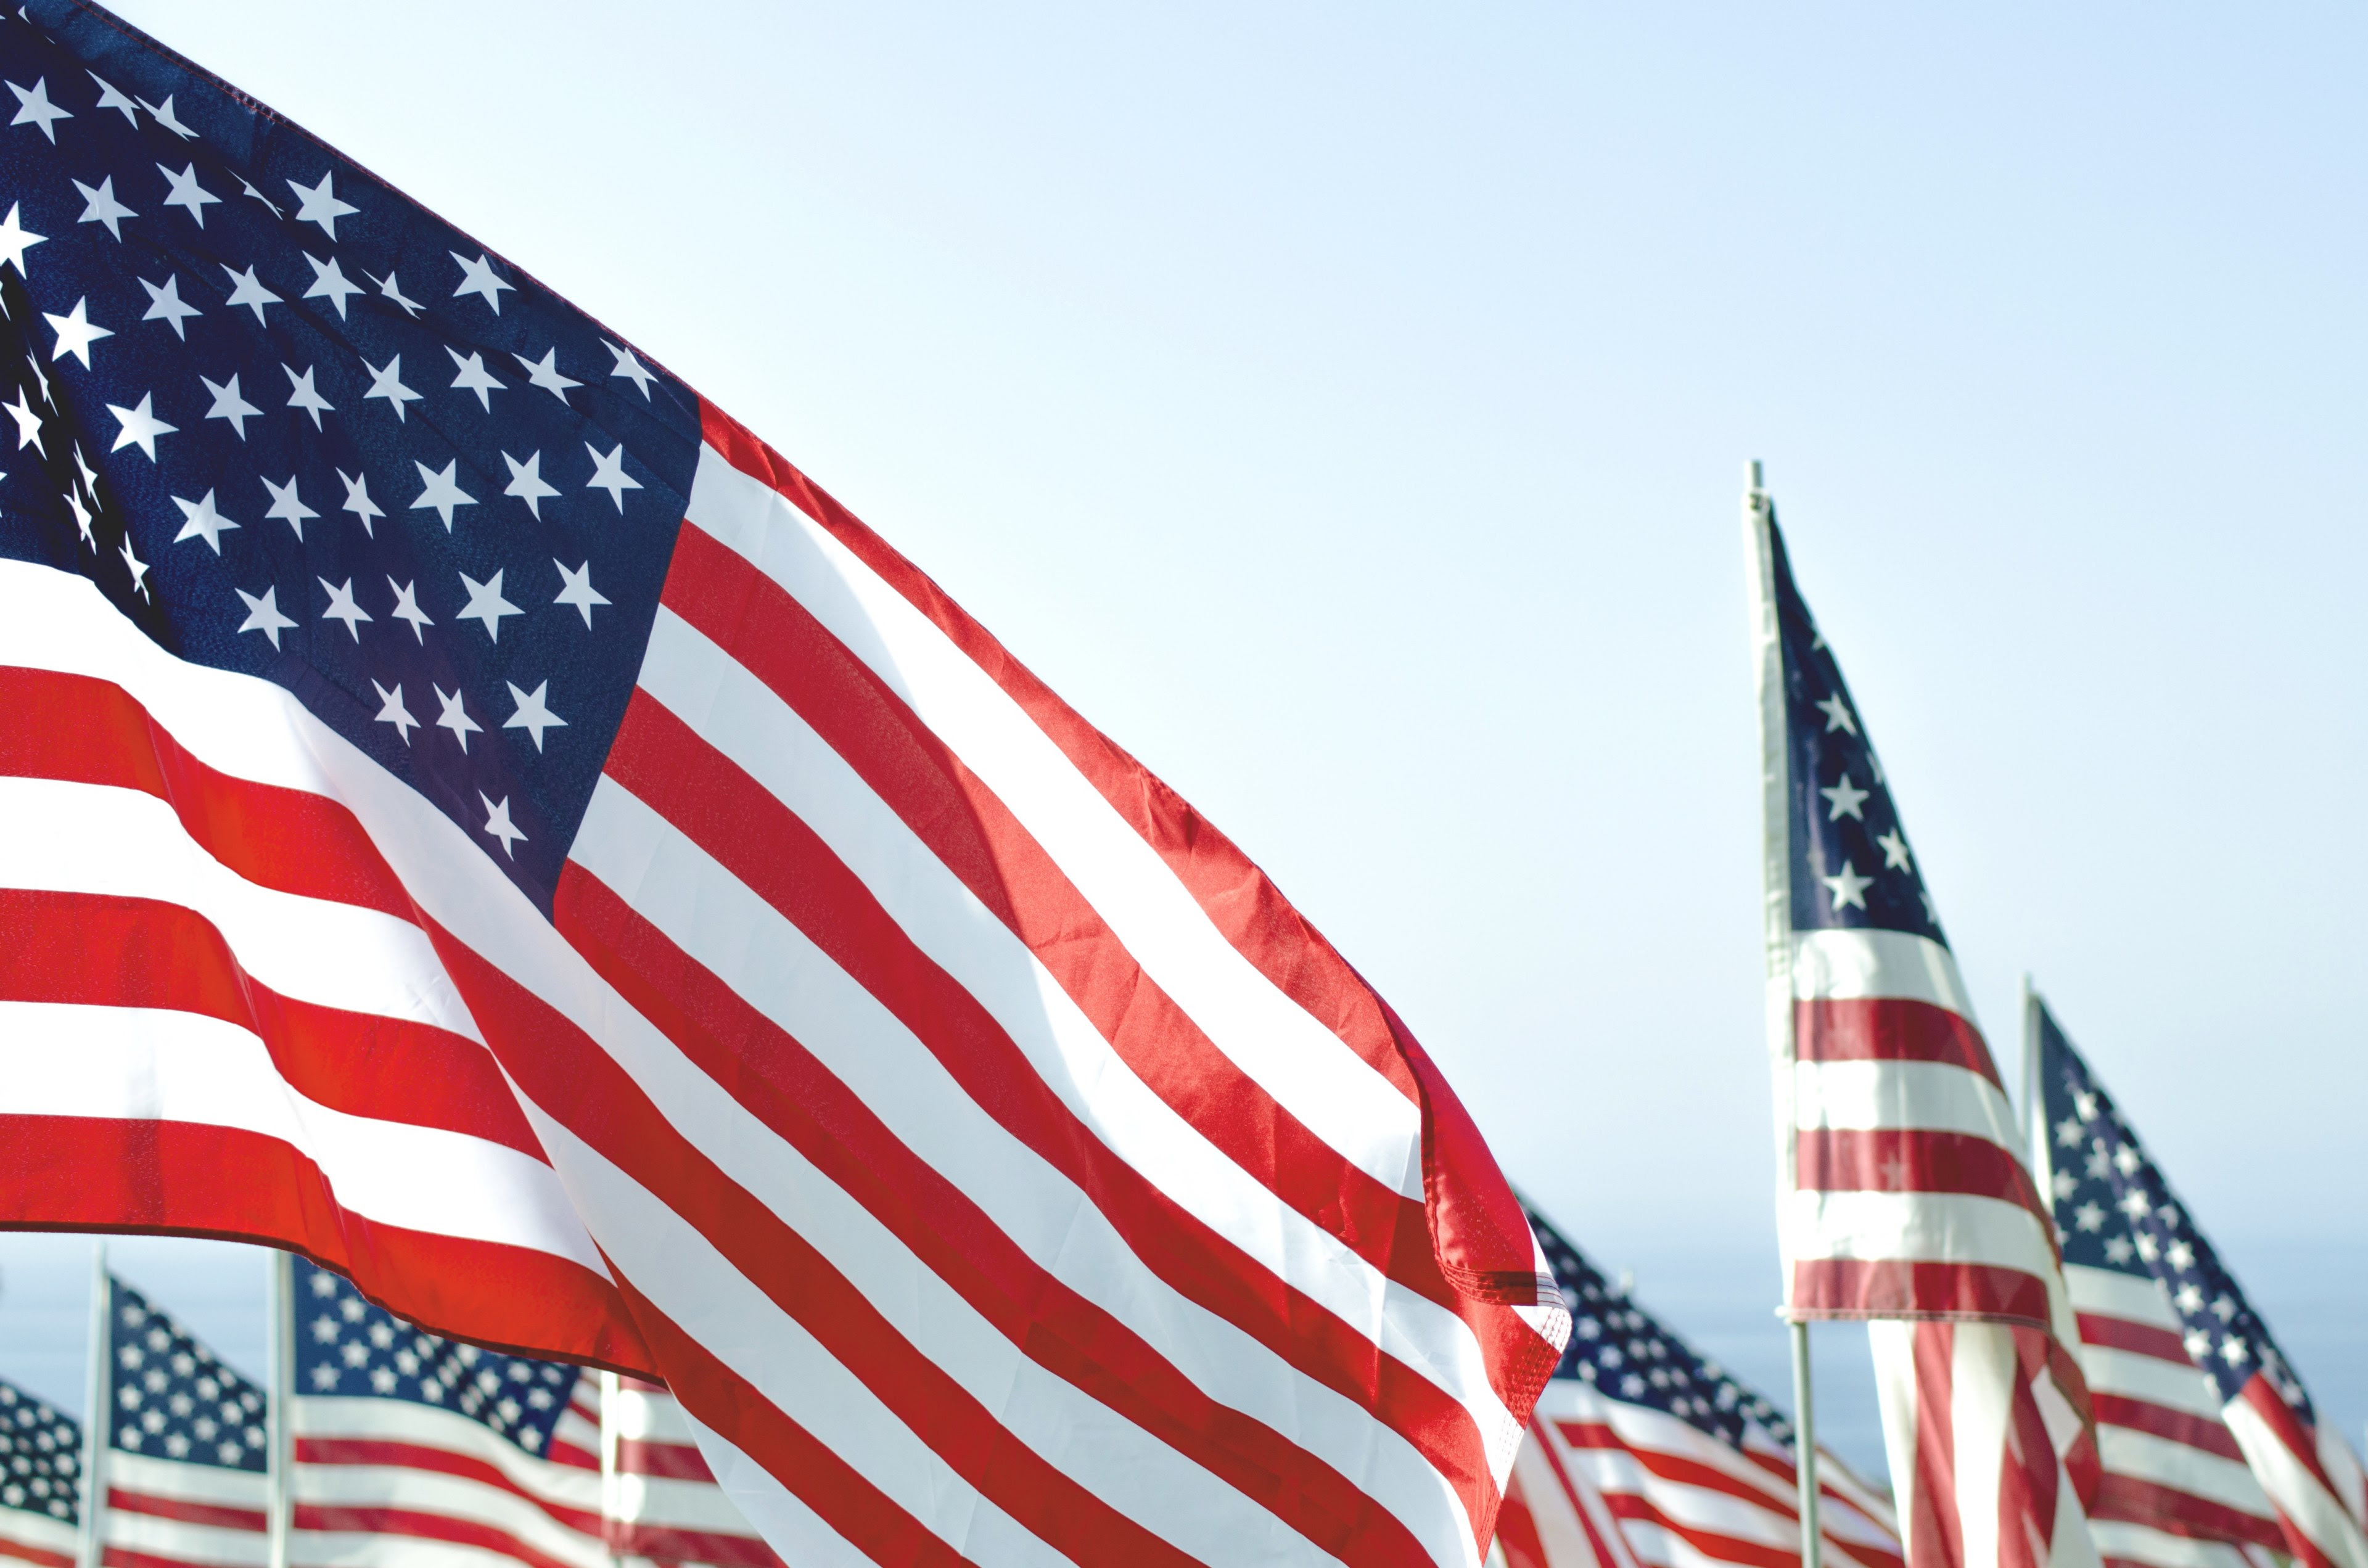 Flag United States America And Flagpole Hd 4k Wallpaper And Background